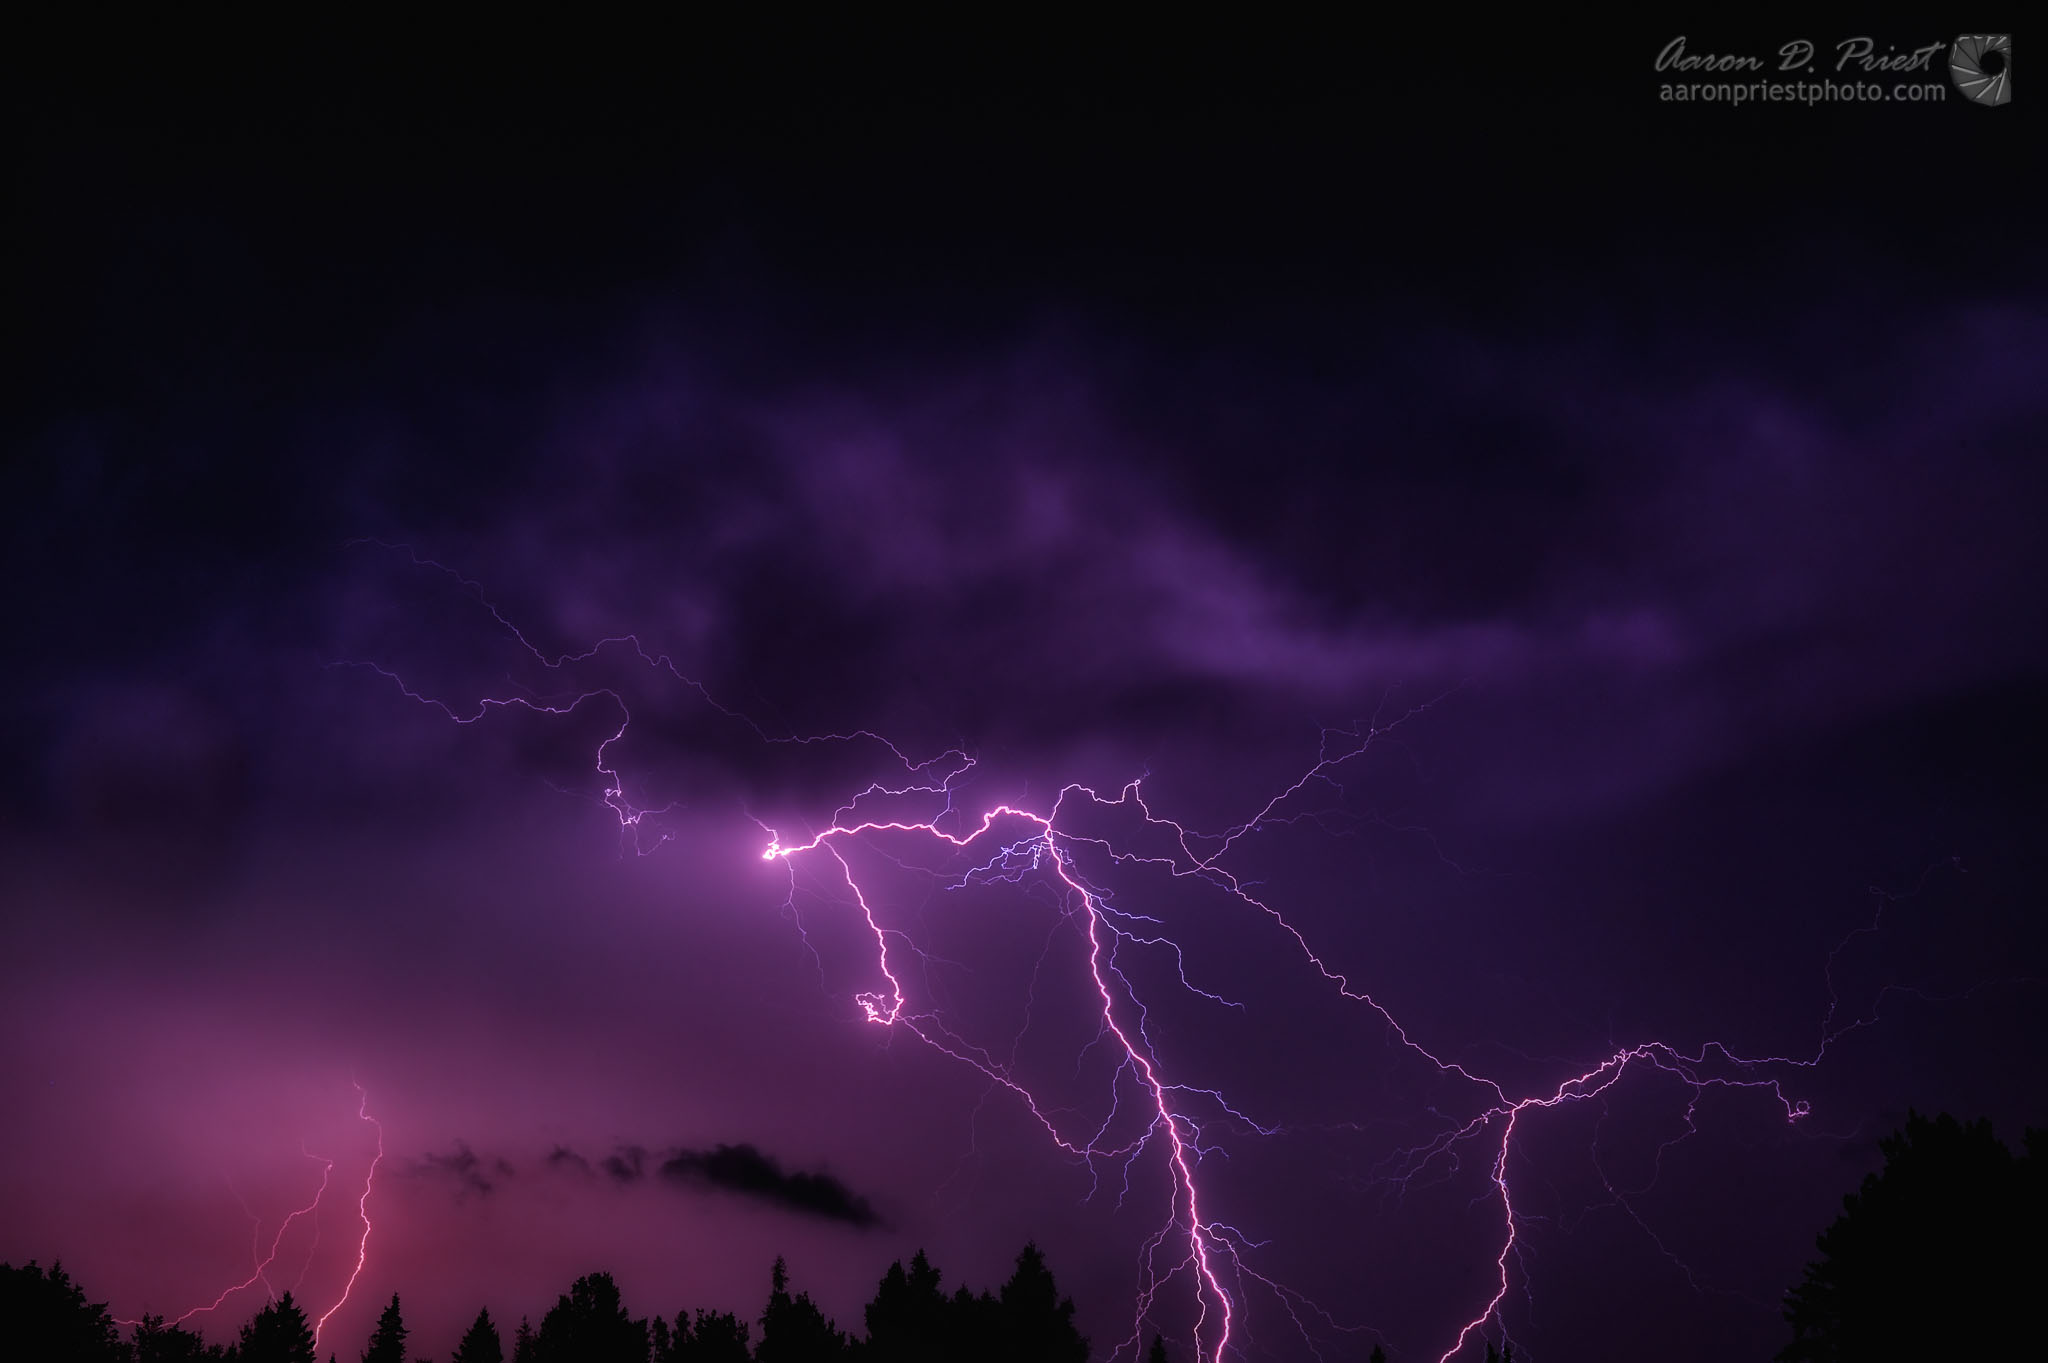 Lightning Storm Part 2 | Aaron Priest Photography